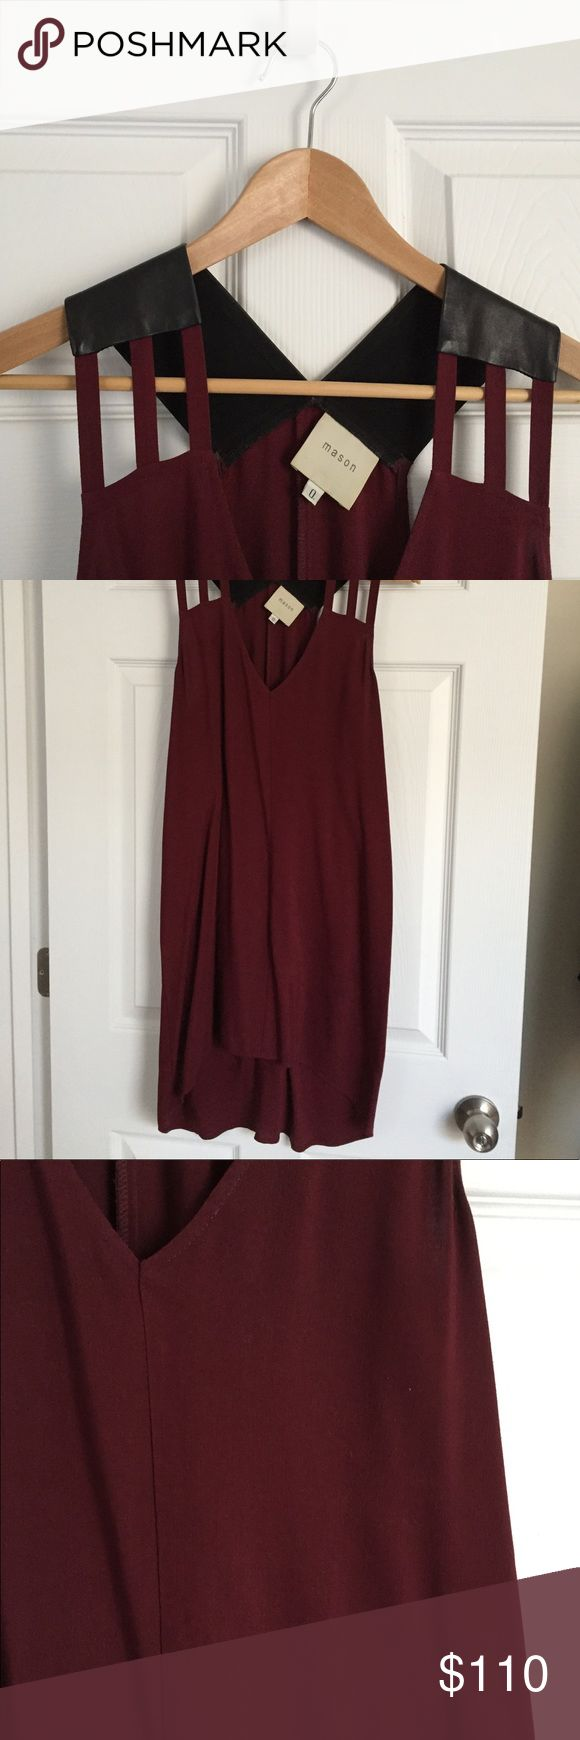 """Modern Dress with Real Leather Accents Rich burgundy shift dress with unique leather shoulder detail and cutouts. Hi-lo skirt, but the effect is minimal. Front hem hits just above the knee on a 5'7"""" frame. Fits up to a size 4. Slips on. By Mason, from Anthropologie.   NOTE: This dress is not vegan. The leather on the shoulders is 100% lambskin (see tag photo). Mason Dresses High Low"""